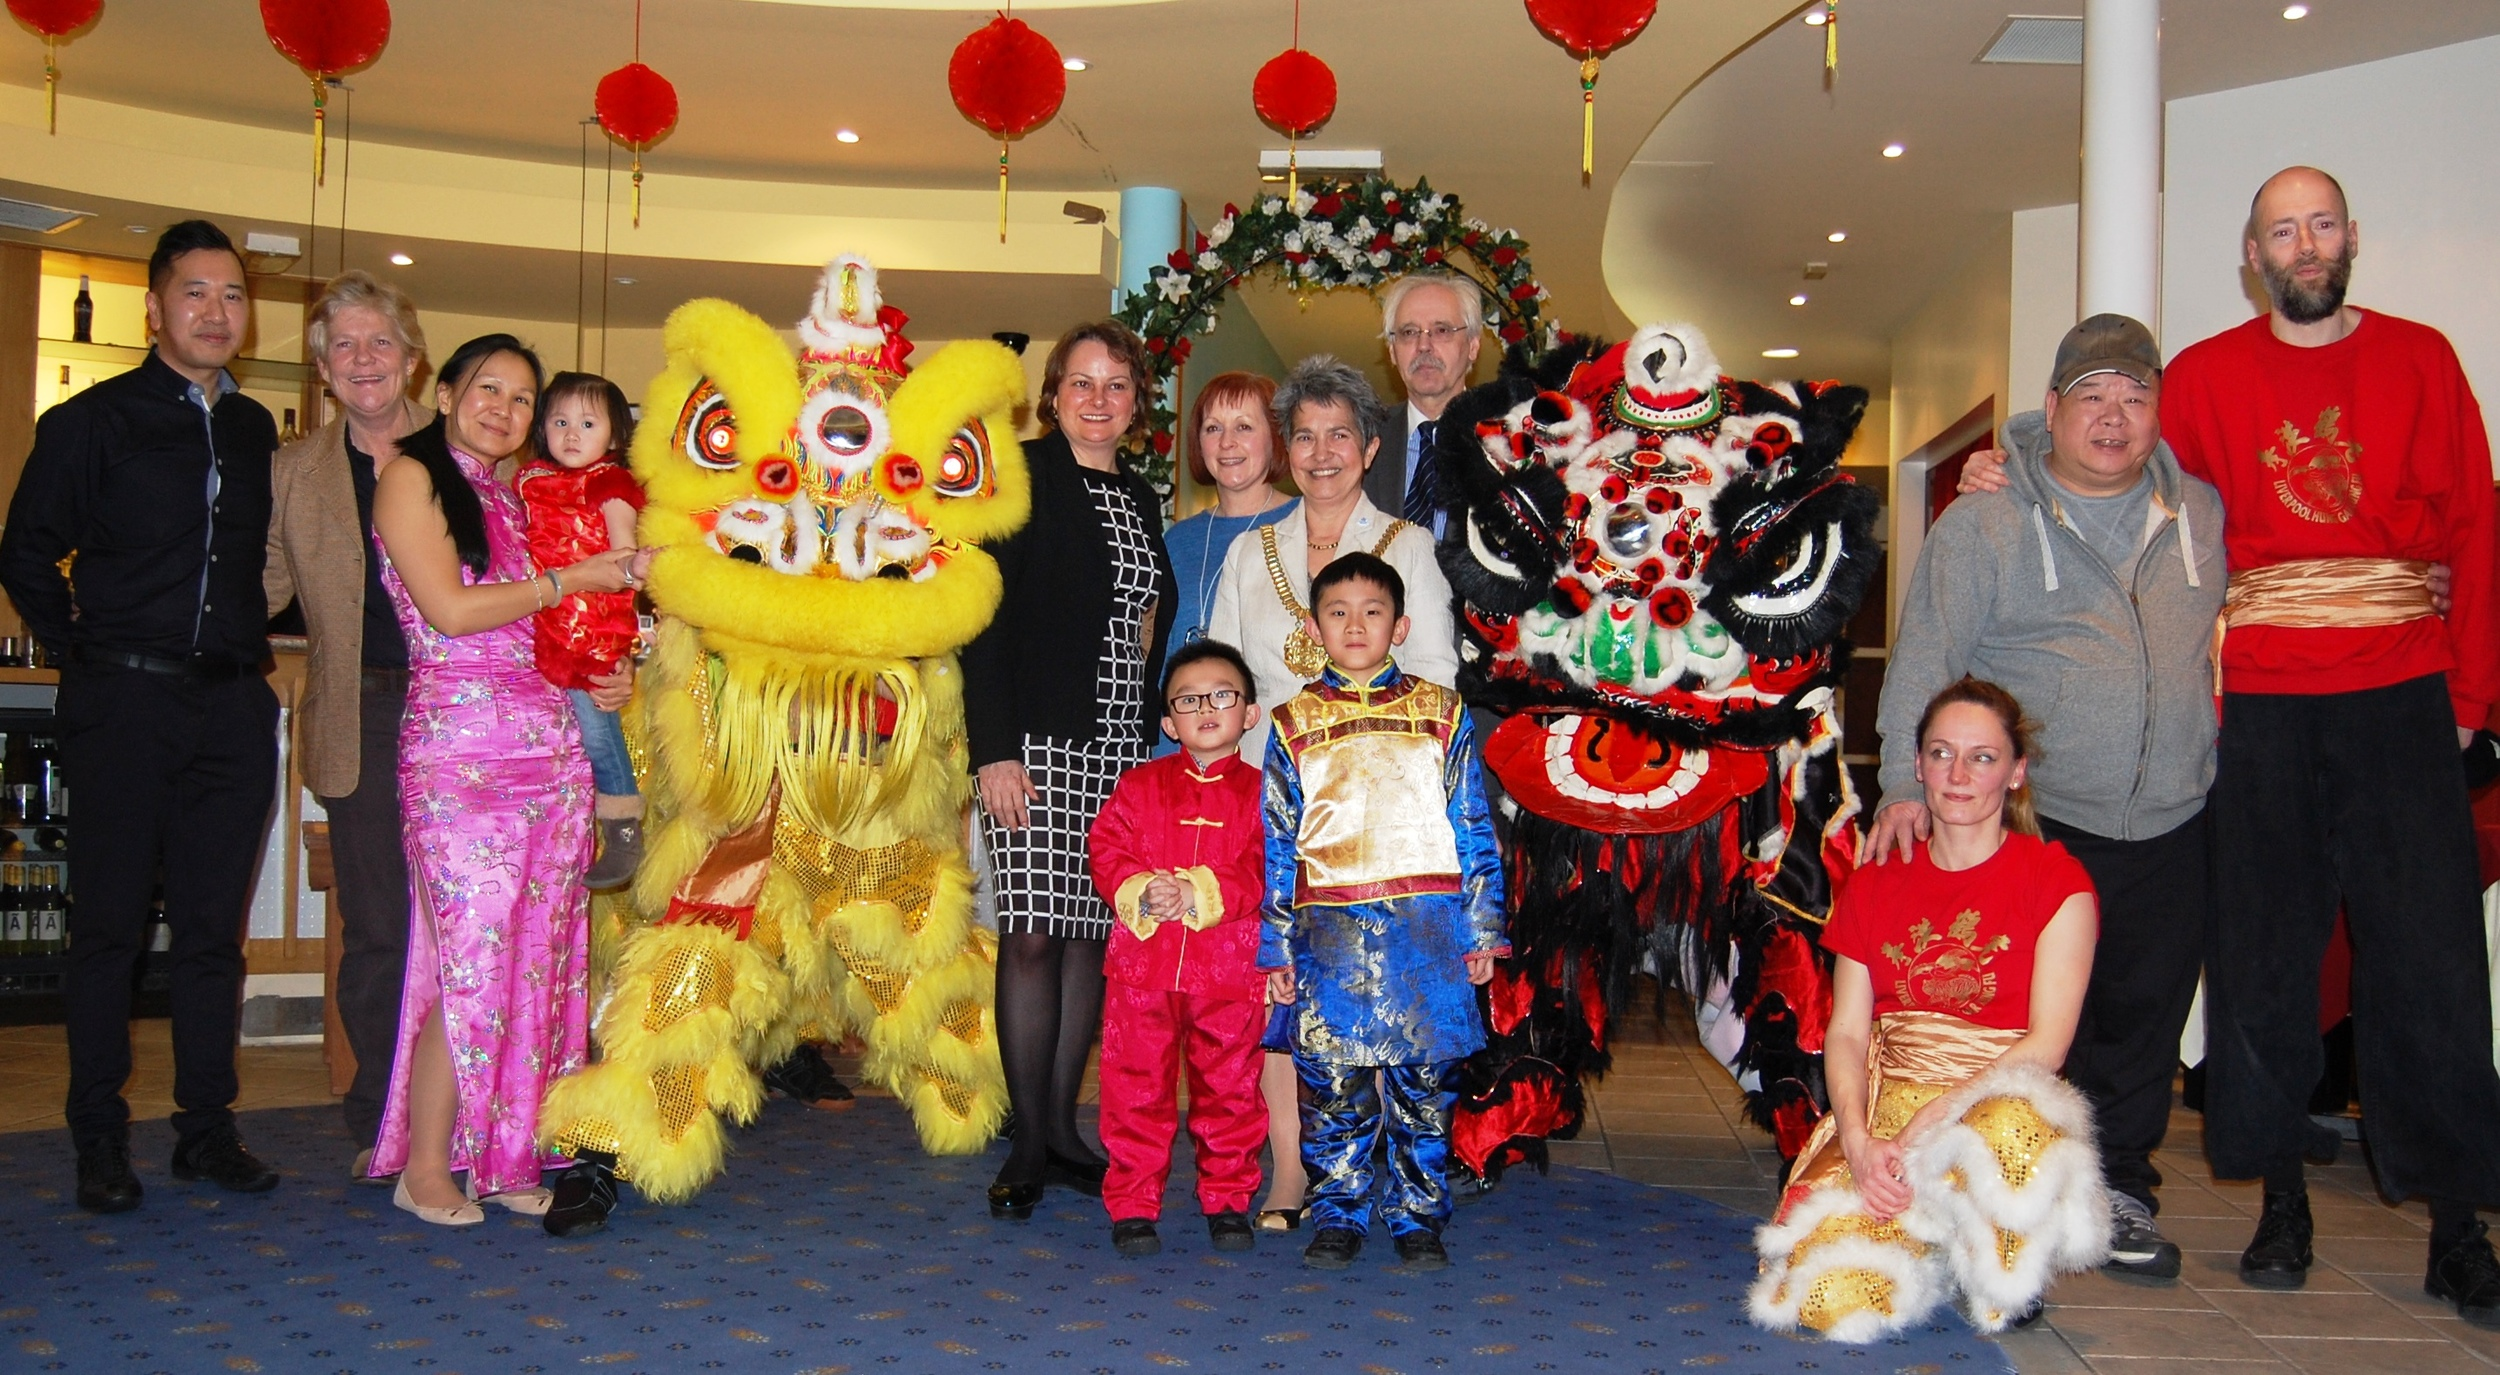 East Meets West:The Lord Mayor of Liverpool Cllr Erica Kemp CBE and Cllr Richard Kemp, pictured with representatives of Housing People, Building Communities, Business in the Community and the Chung Ku restaurant.